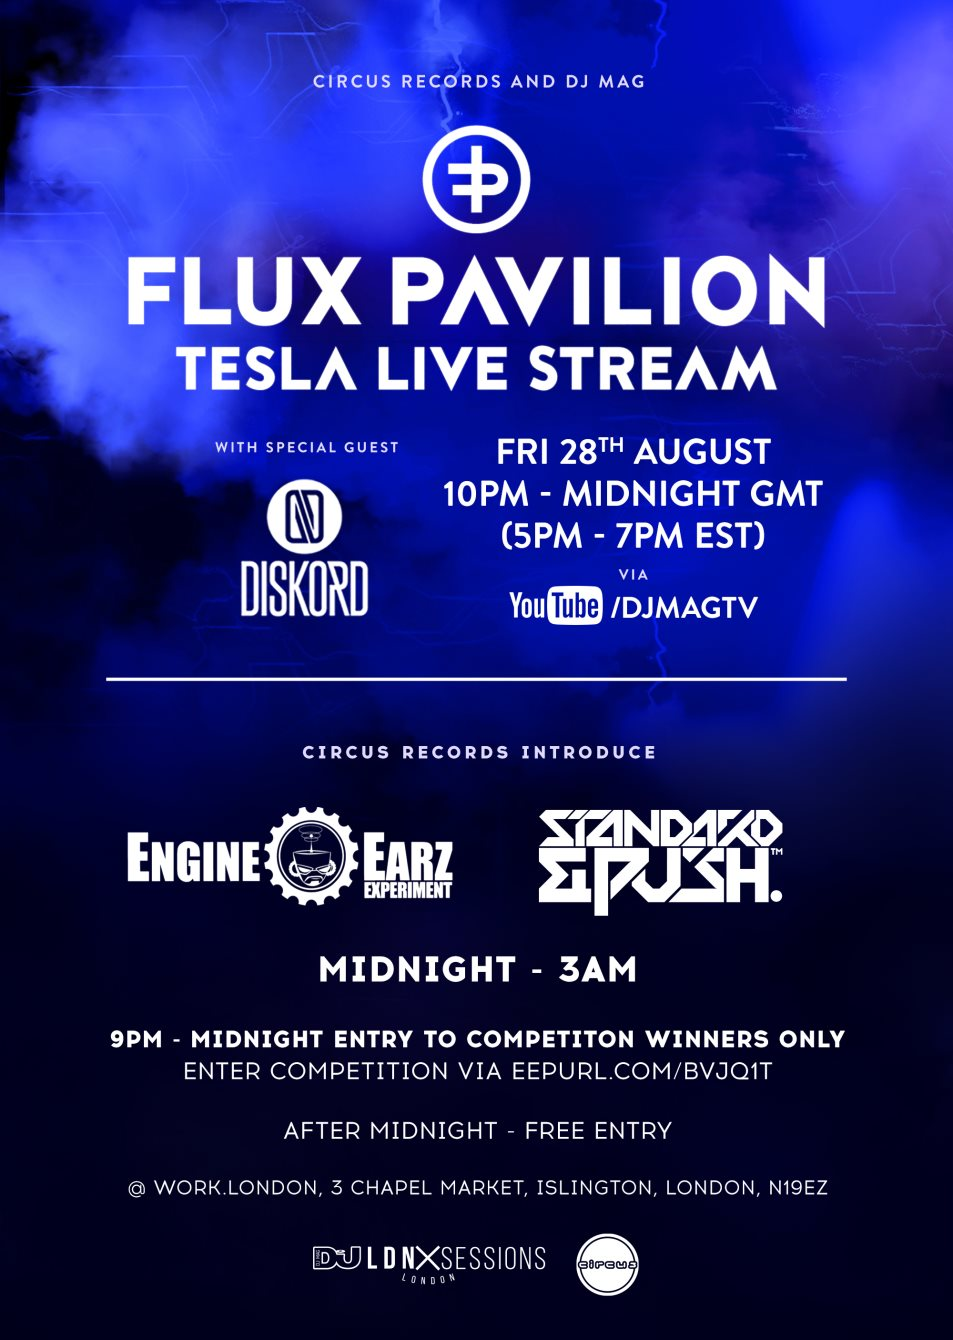 download → Flux Pavilion & Diskord - DJ Set at DJ Mag LDN Sessions - 28-Aug-2015